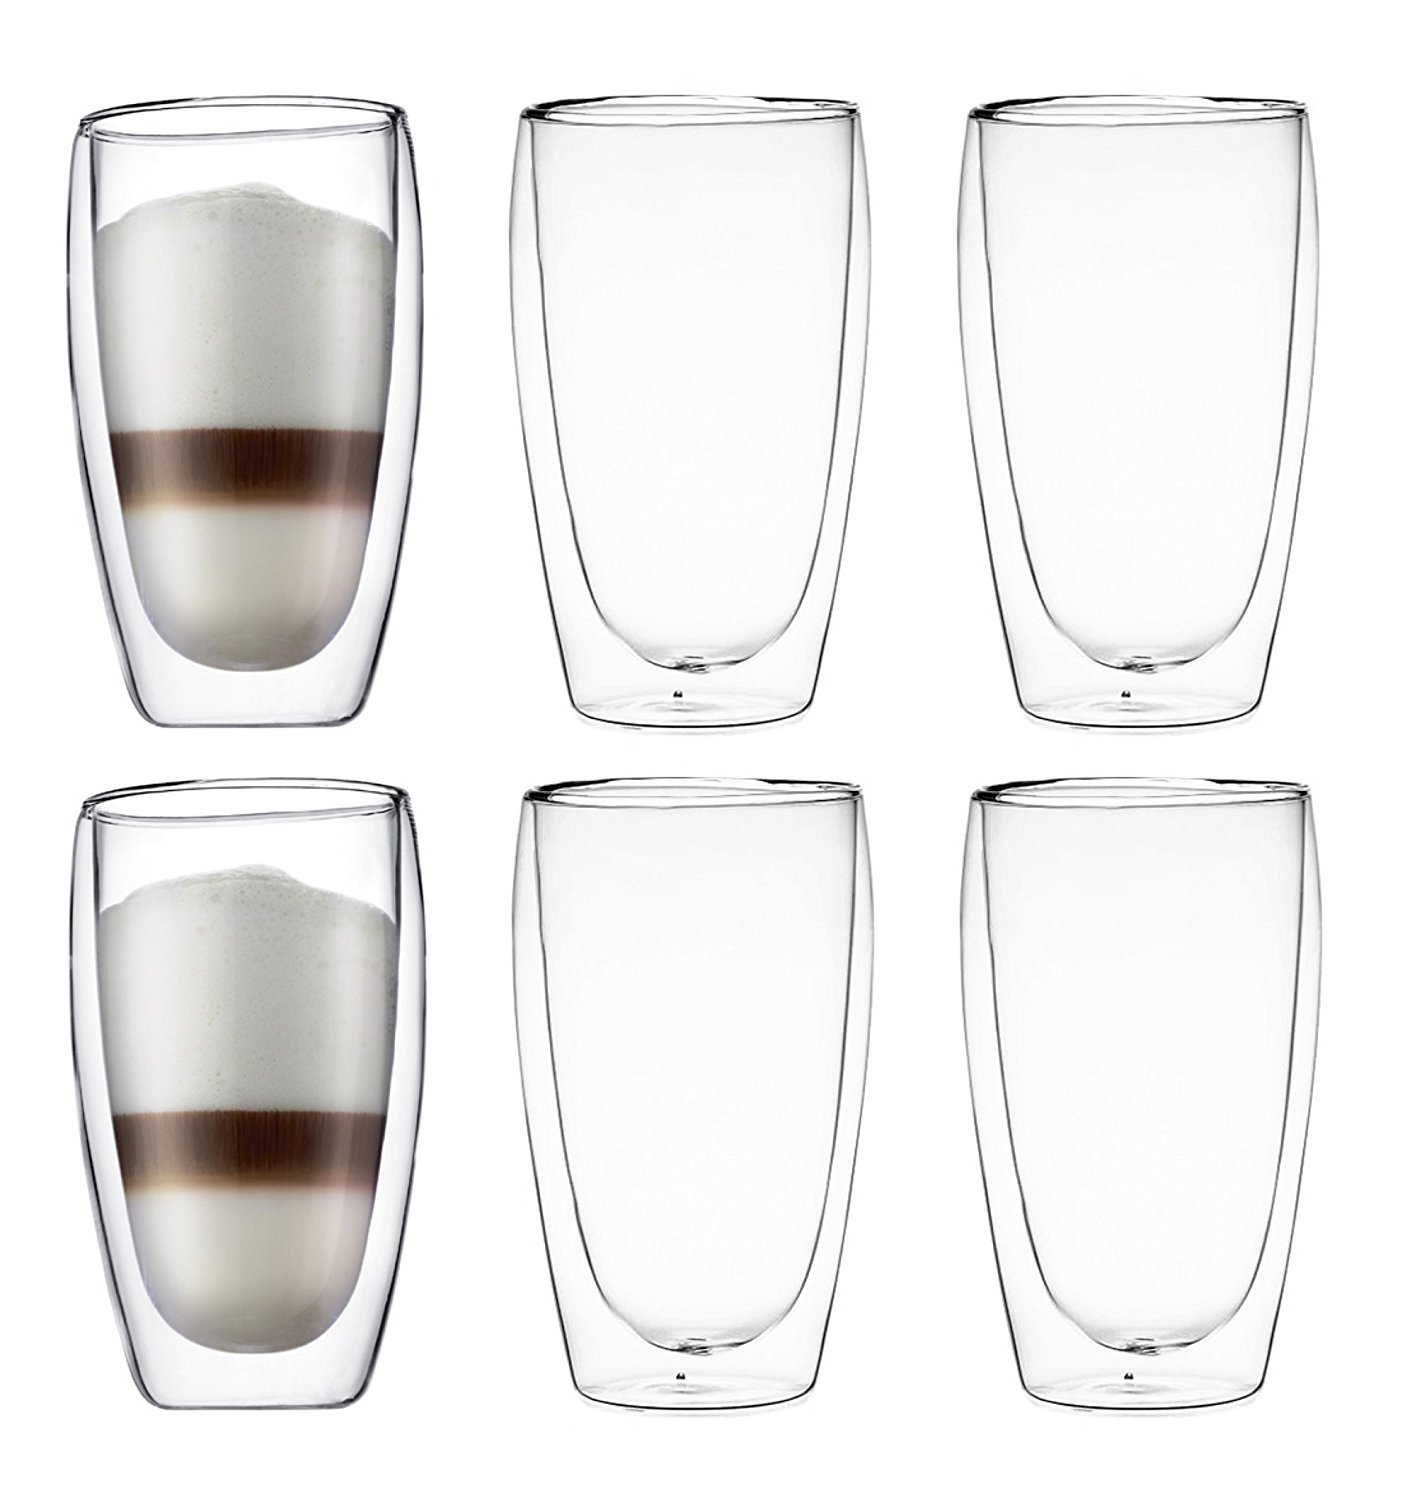 Bodum Pavina Double-wall Insulated 15-ounce Glasses - (Set of 6) by Bodum (Image #1)